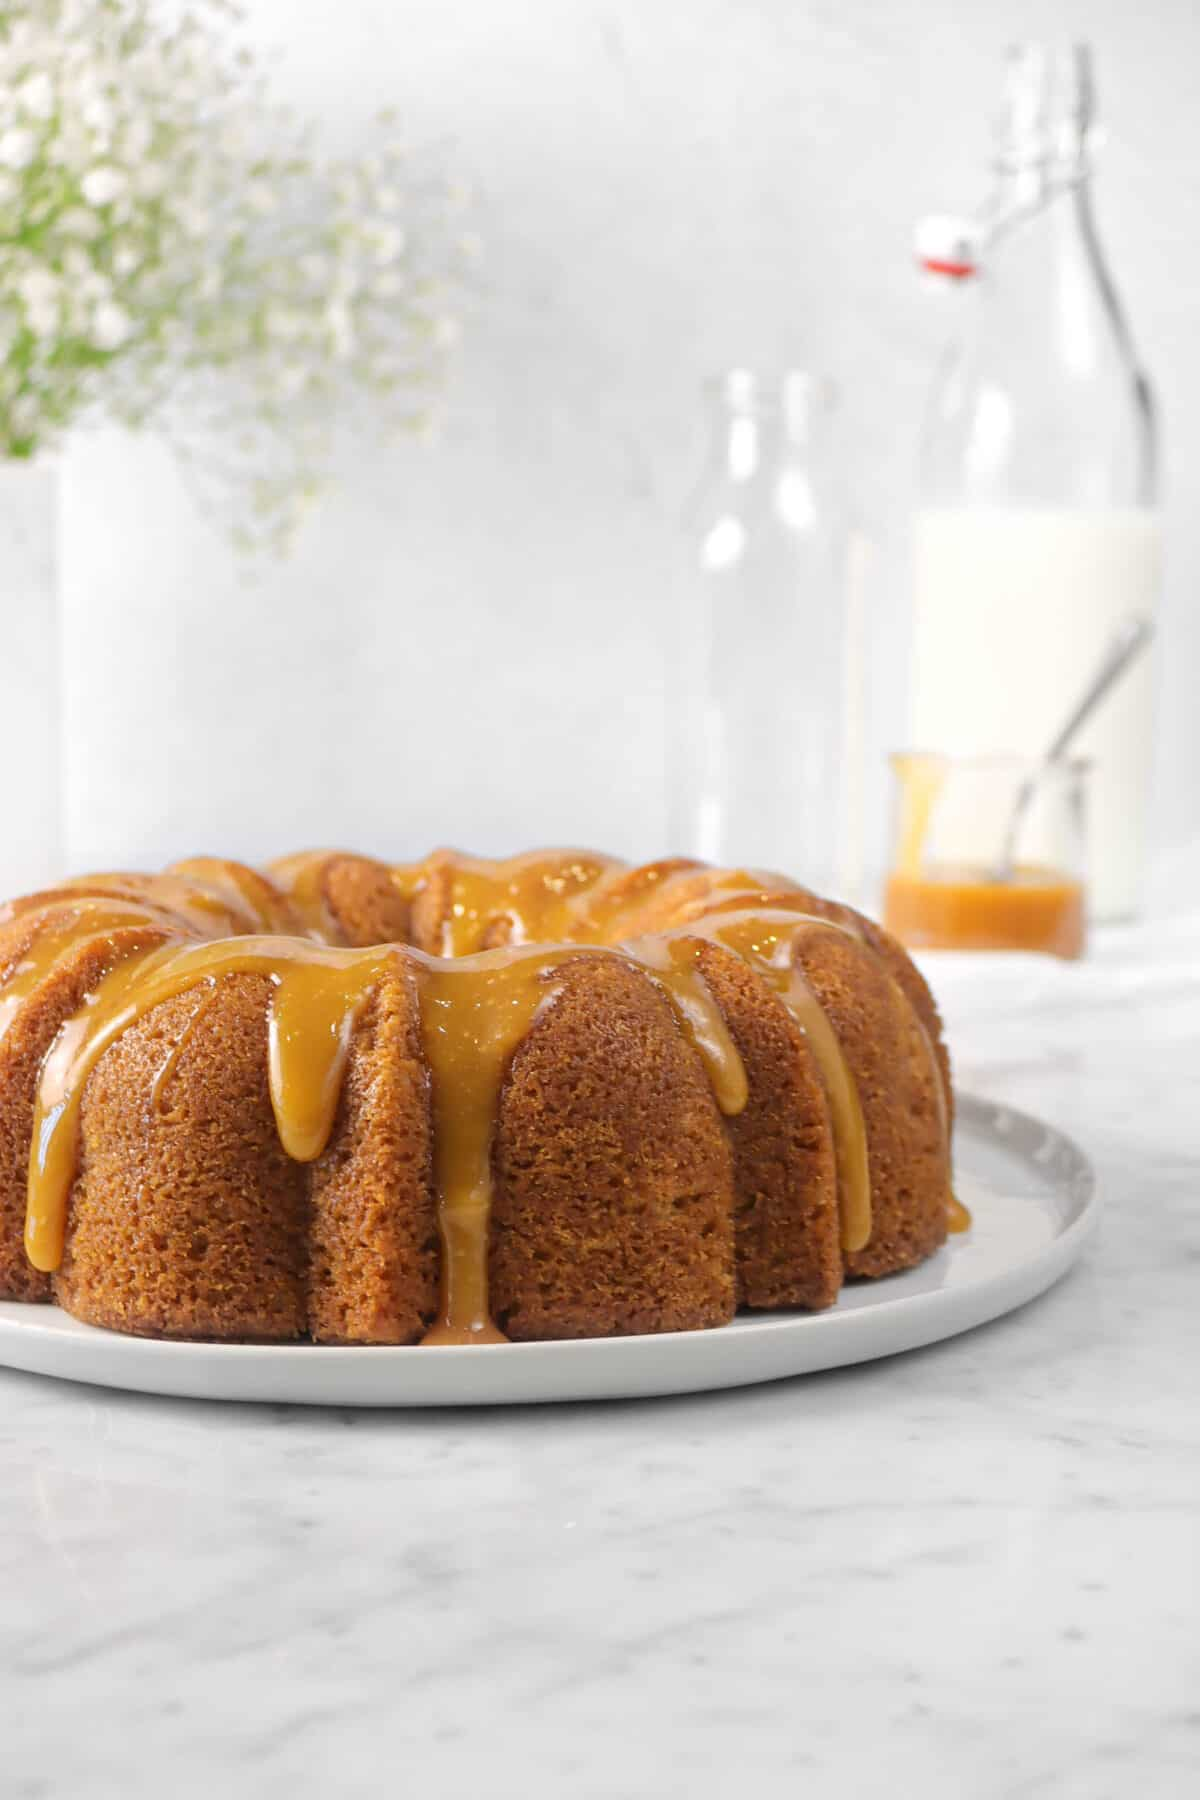 bundt cake on a white plate with caramel sauce, flowers, and milk in the background